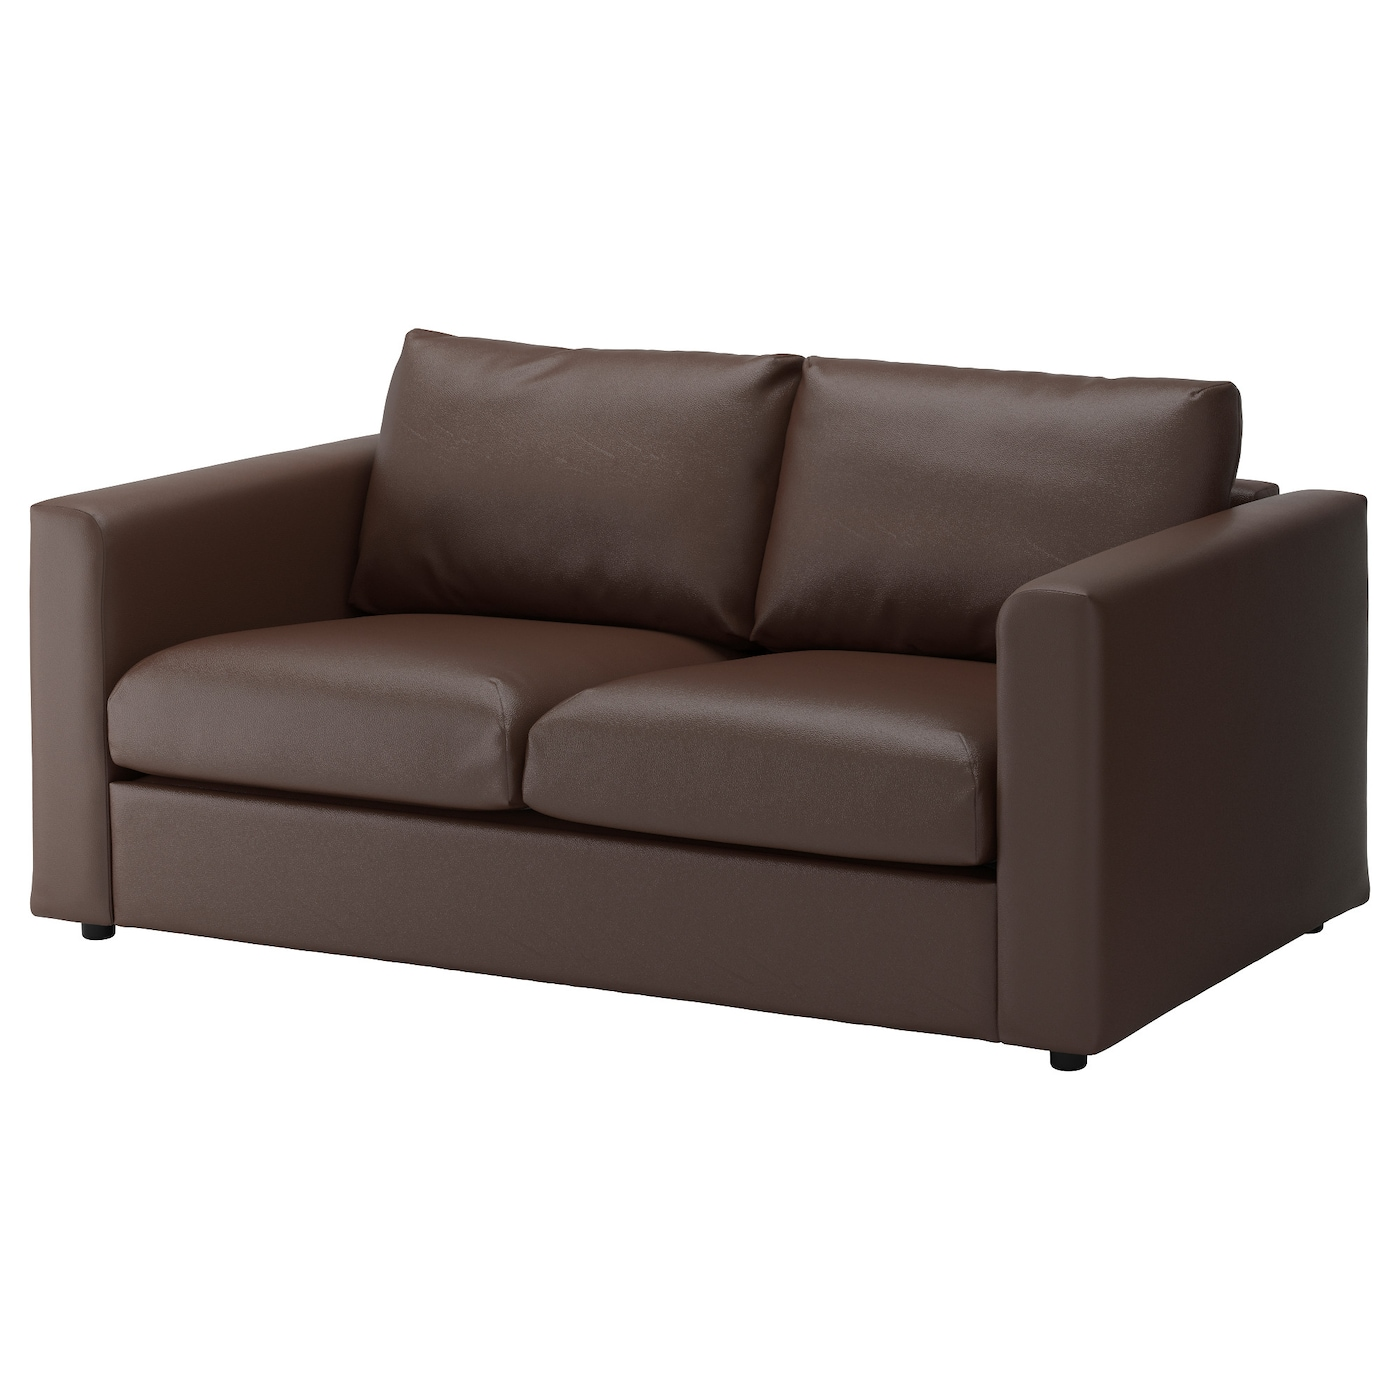 2 Sofa Modern 2 Seater Sofas Quality From Boconcept Thesofa